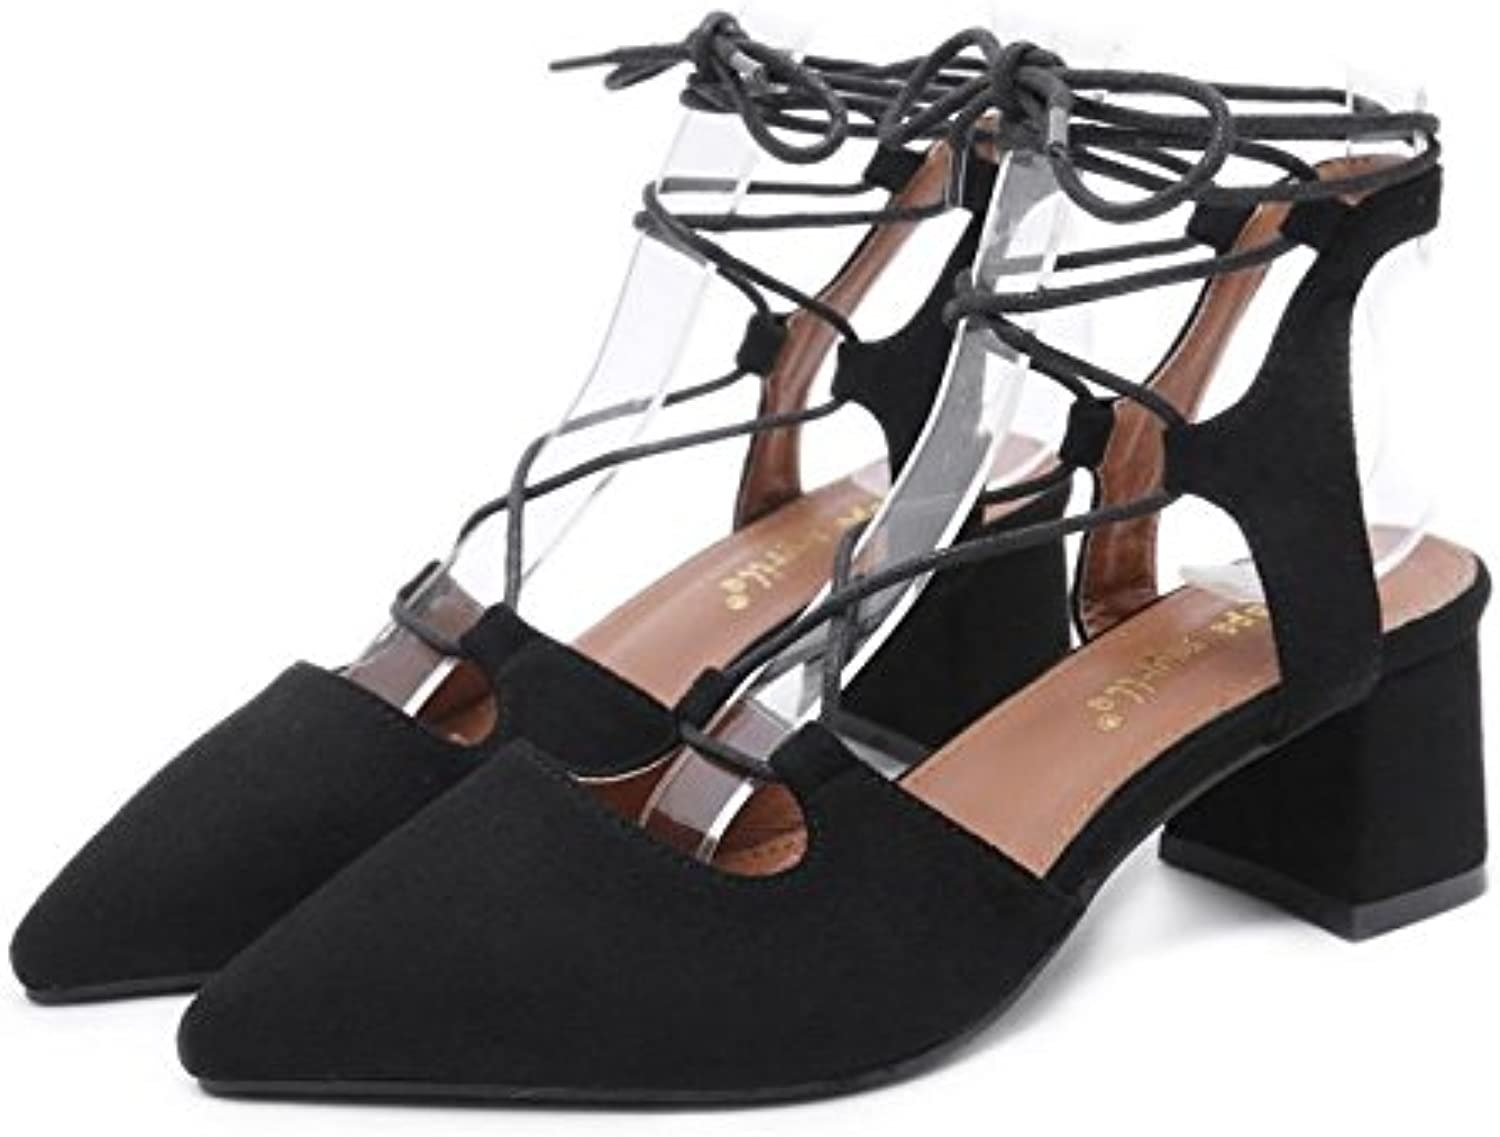 RUGAI-UE Sandals and sandals for European and American fashions